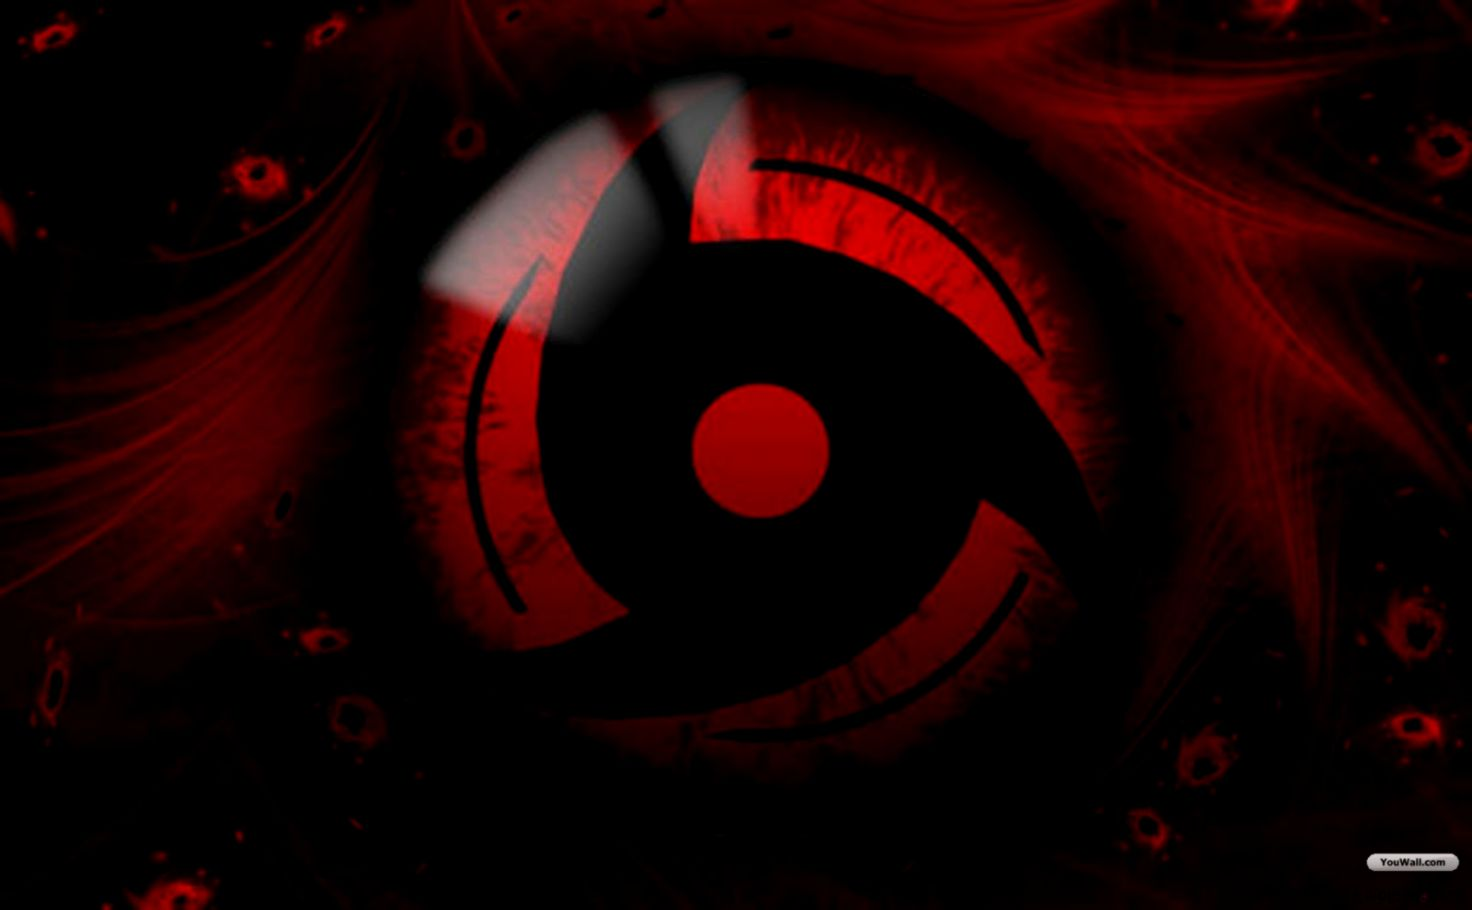 Naruto Shippuden Wallpaper Complete Sharingan Eye Wallpaper